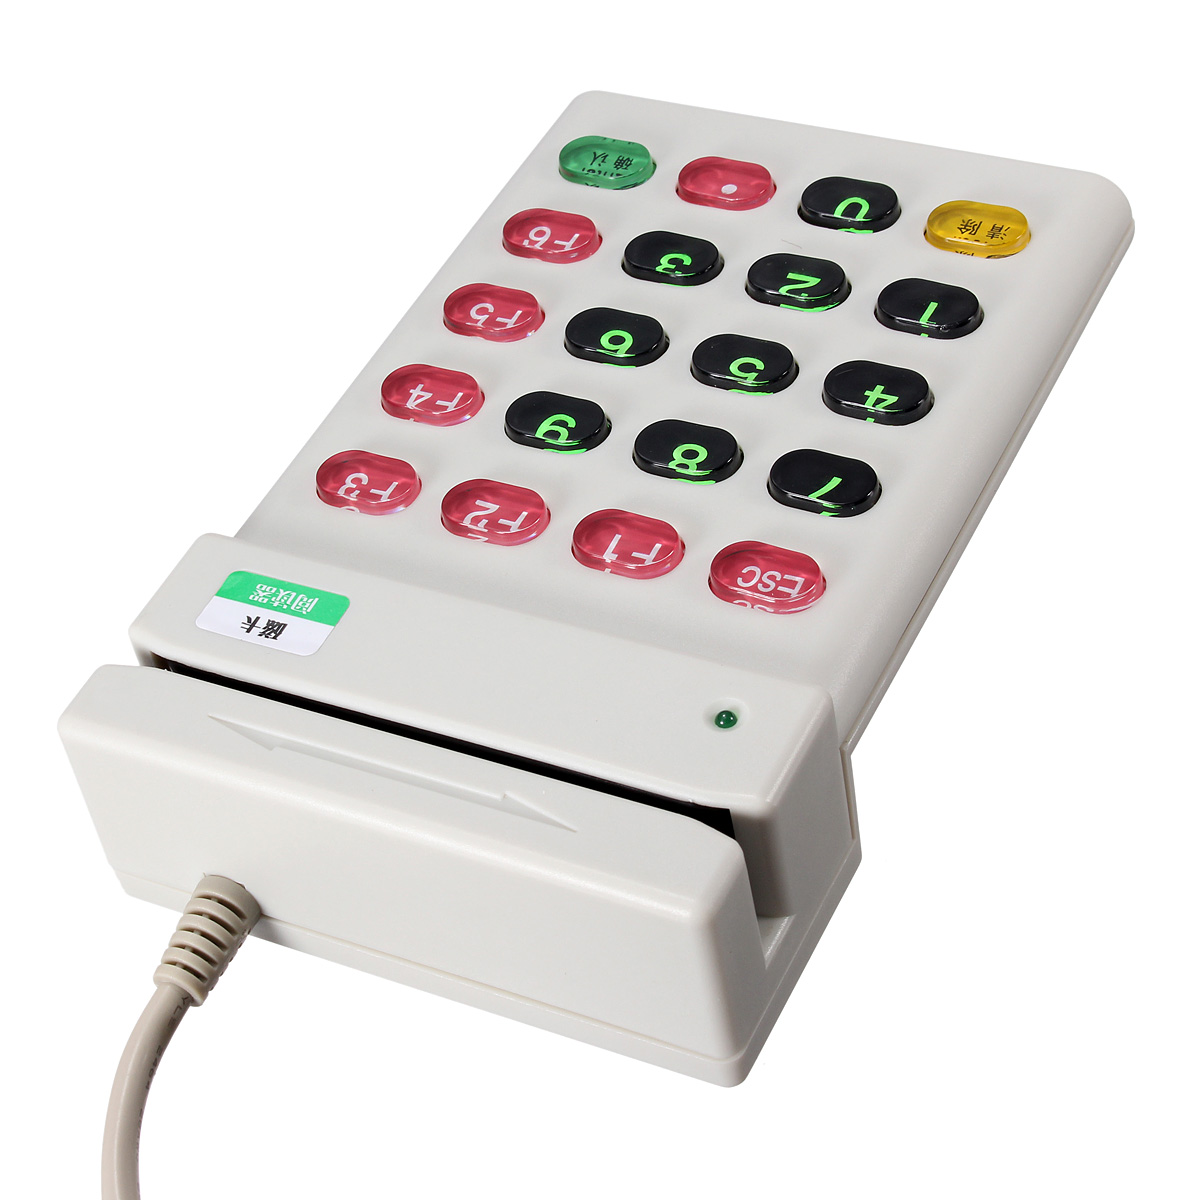 keypad for credit card machine